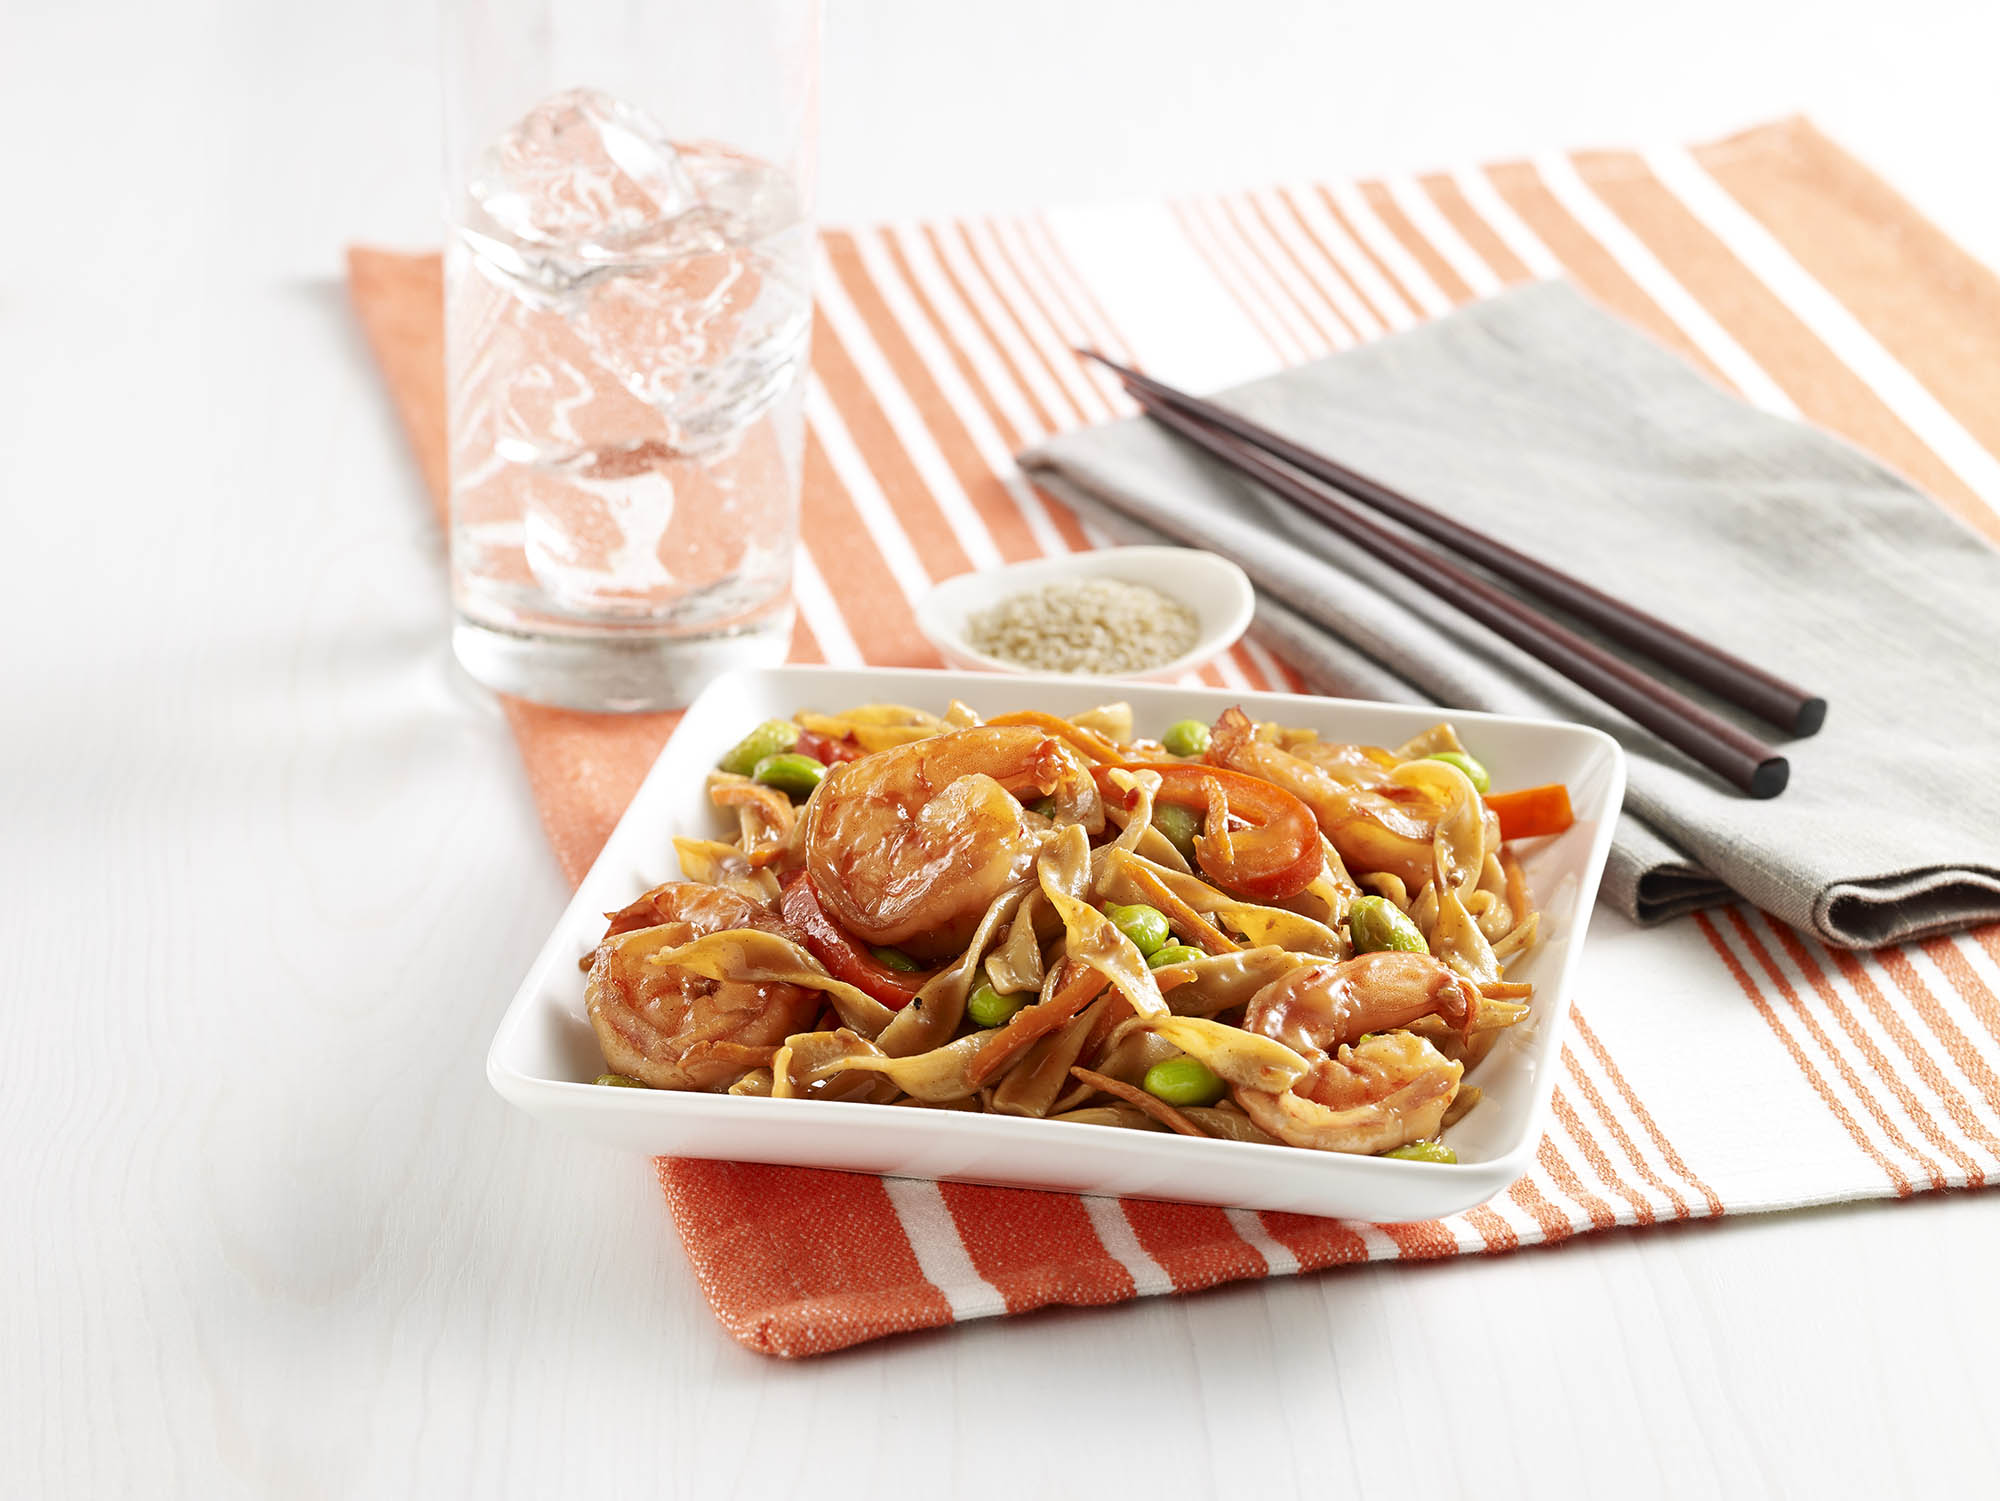 Pan Fried Noodles with Shrimp Pan fried egg noodle stir fry recipe combined with vegetables, shrimp and an Asian flavored sauce